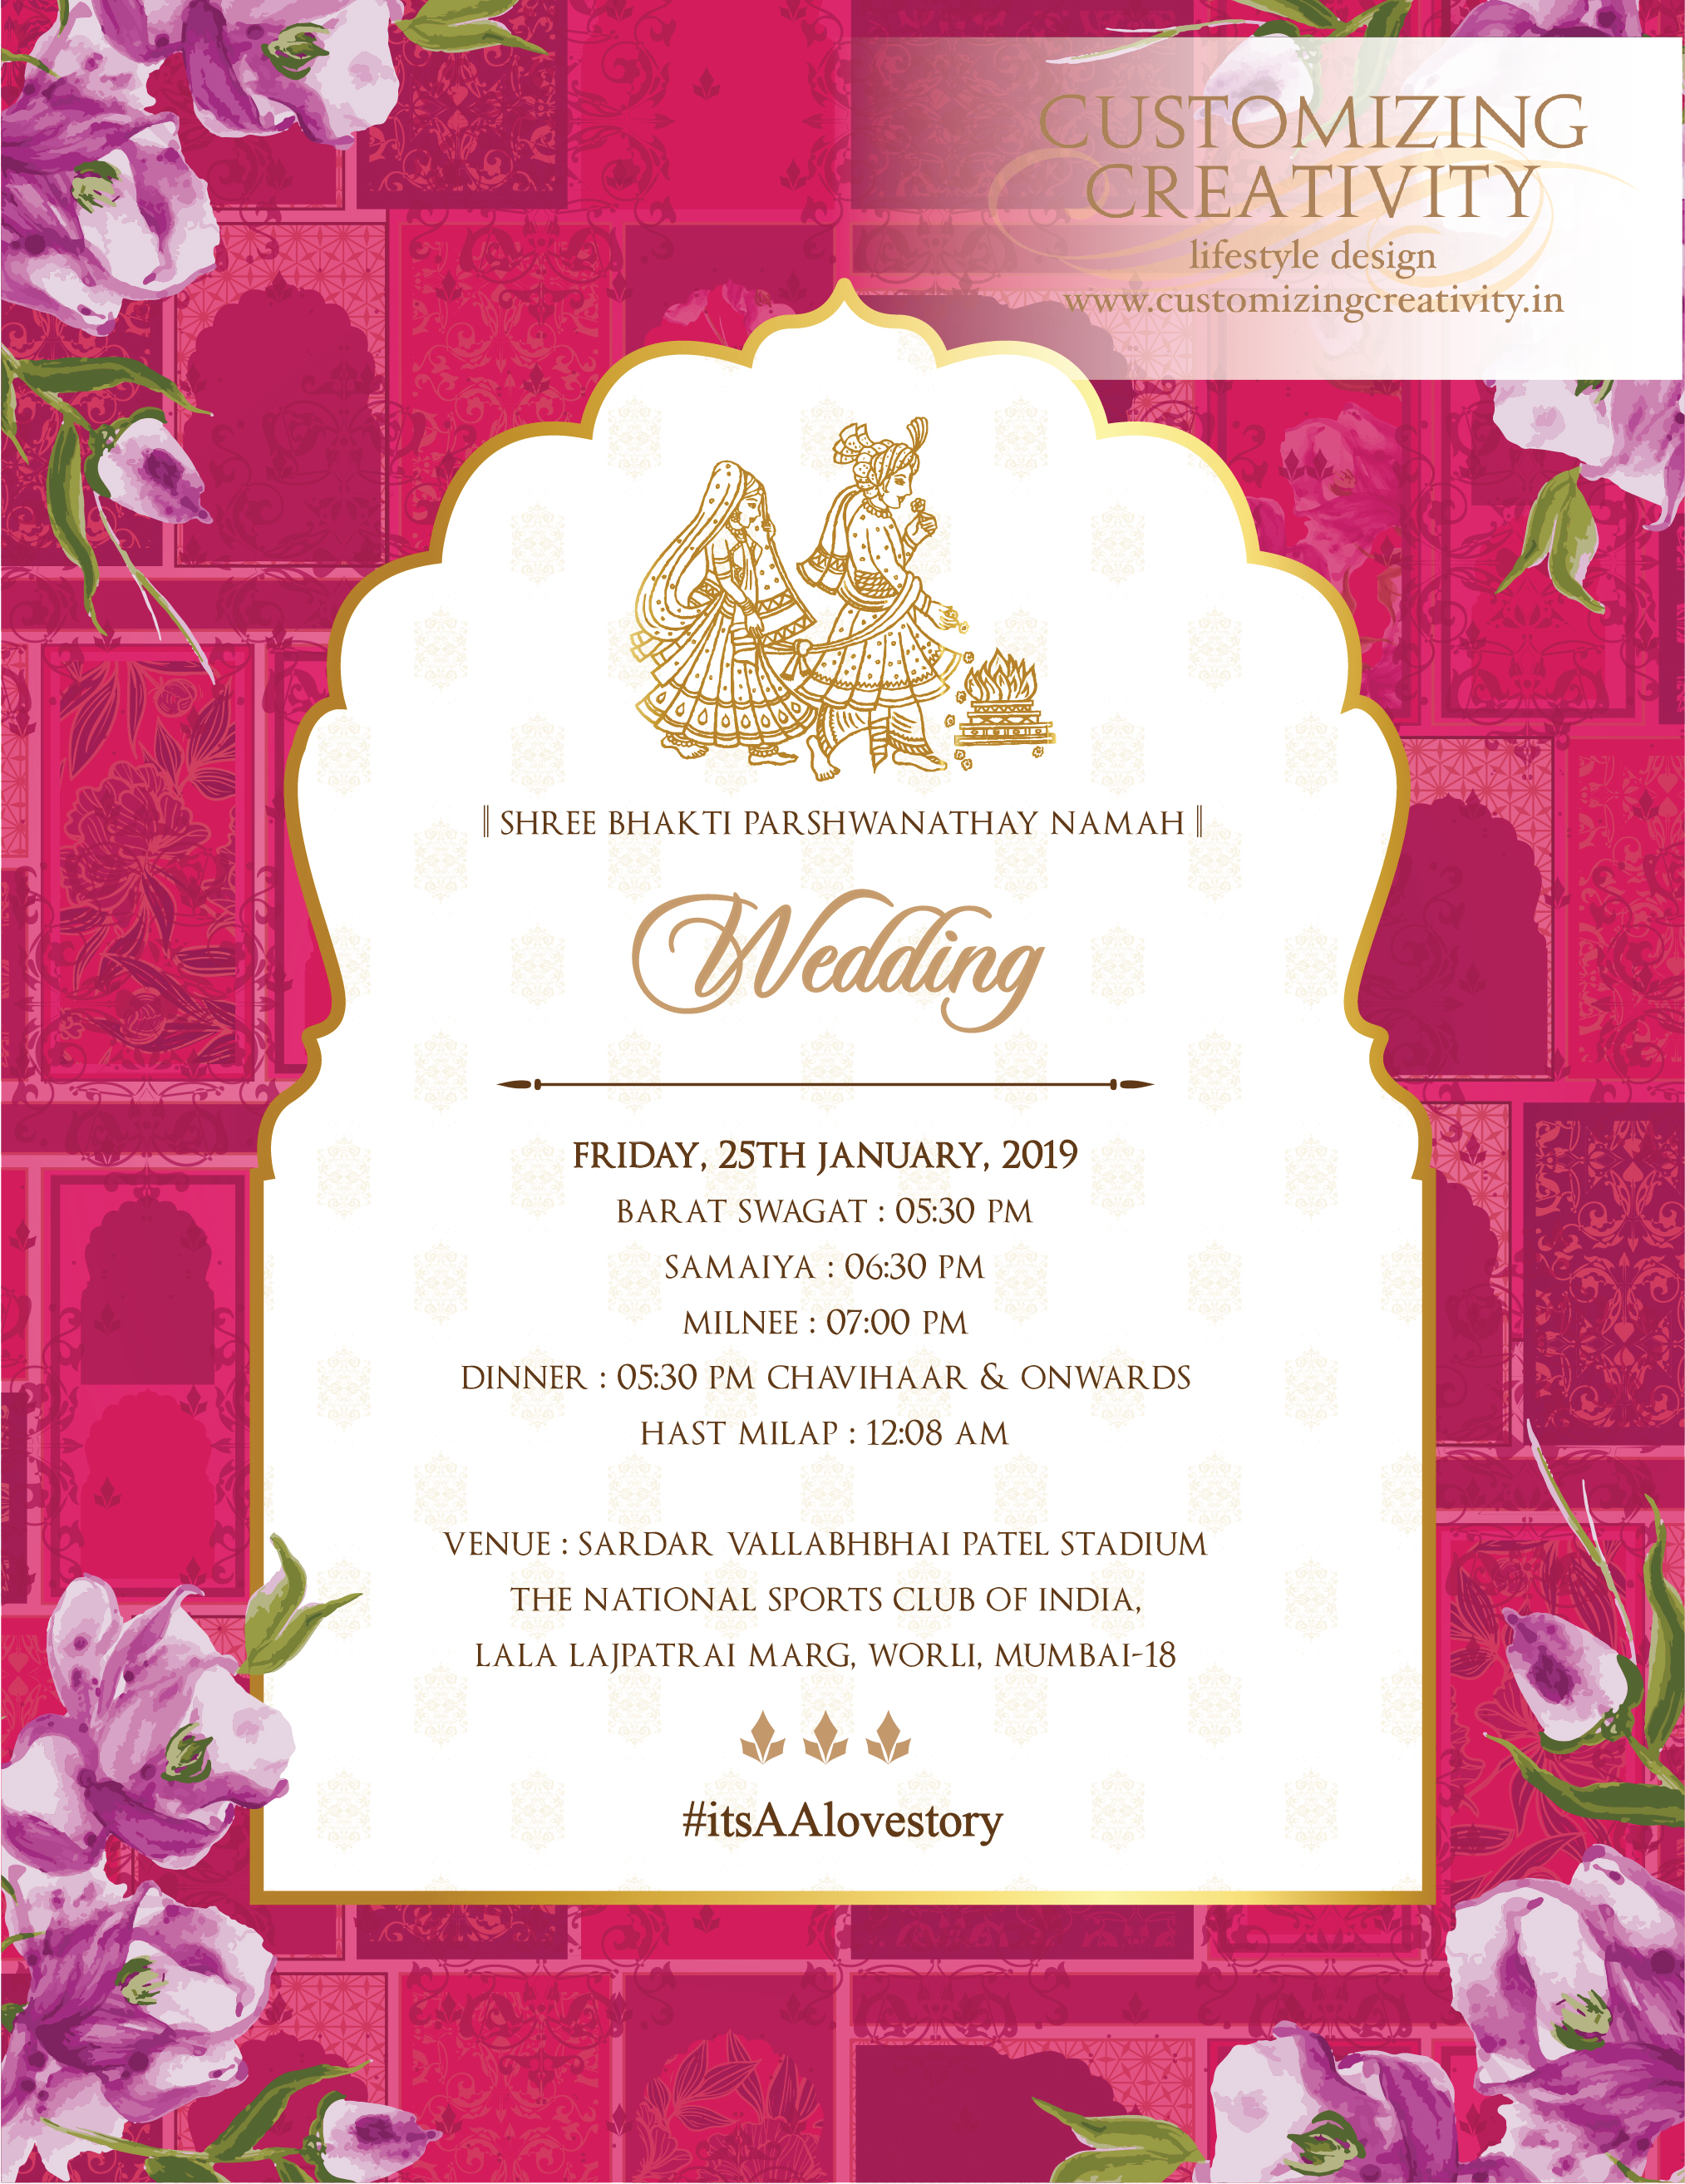 Digital Invites Evite Designs Eversion E Vite E Cards Invites Invitation Cards Wedding Inv In 2020 Wedding Cards Indian Wedding Cards Indian Wedding Invitations